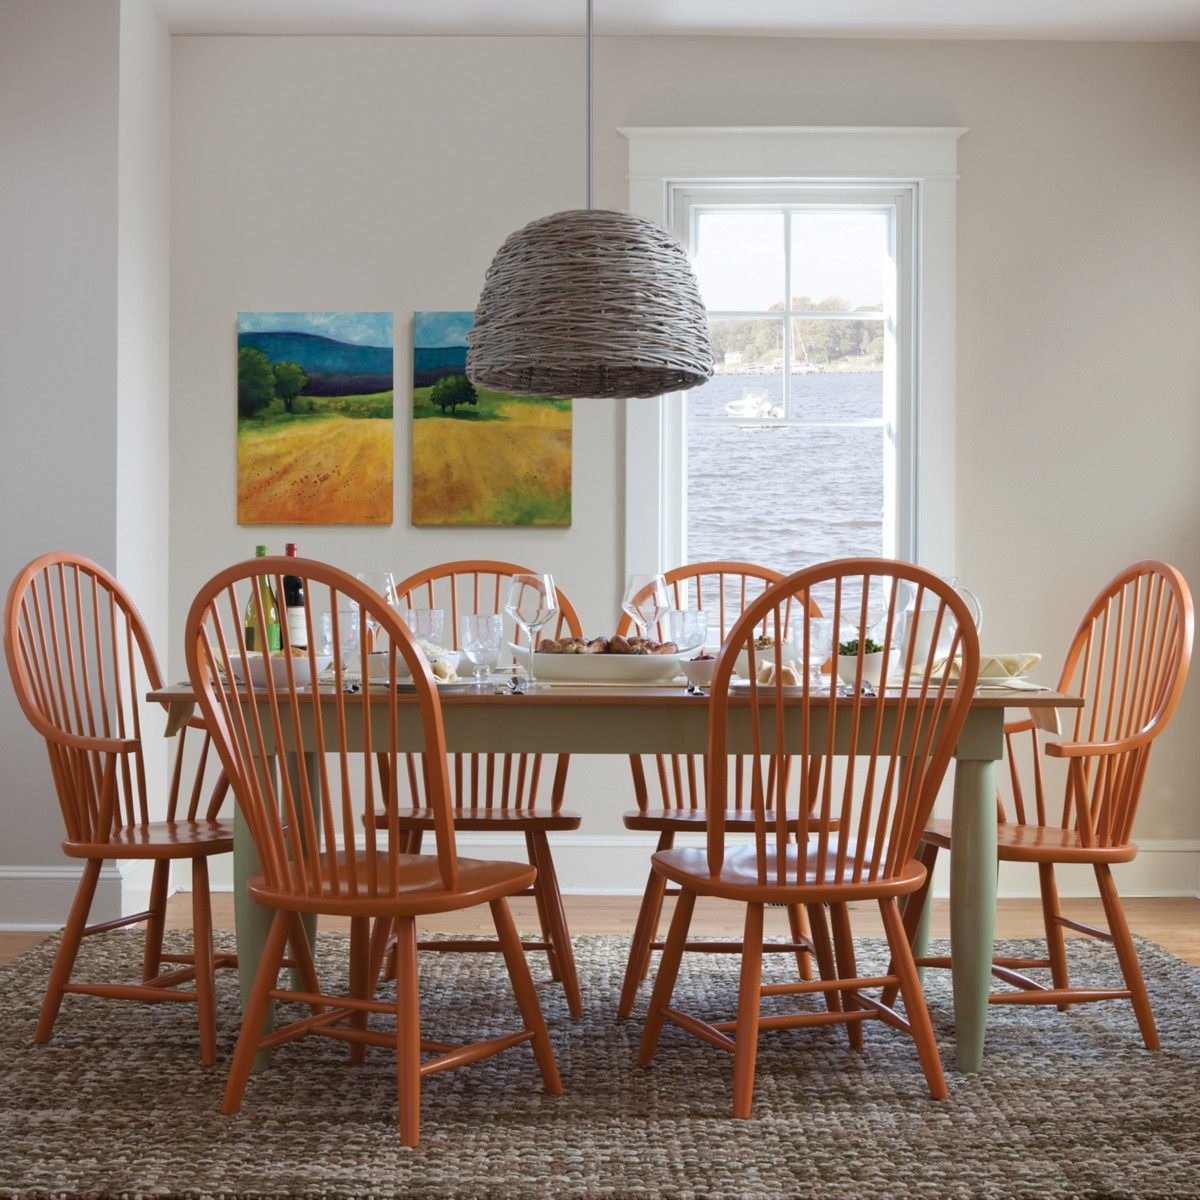 windsor dining chair dining desk chairs maine cottage rh mainecottage com windsor court dining room set windsor style dining room chairs